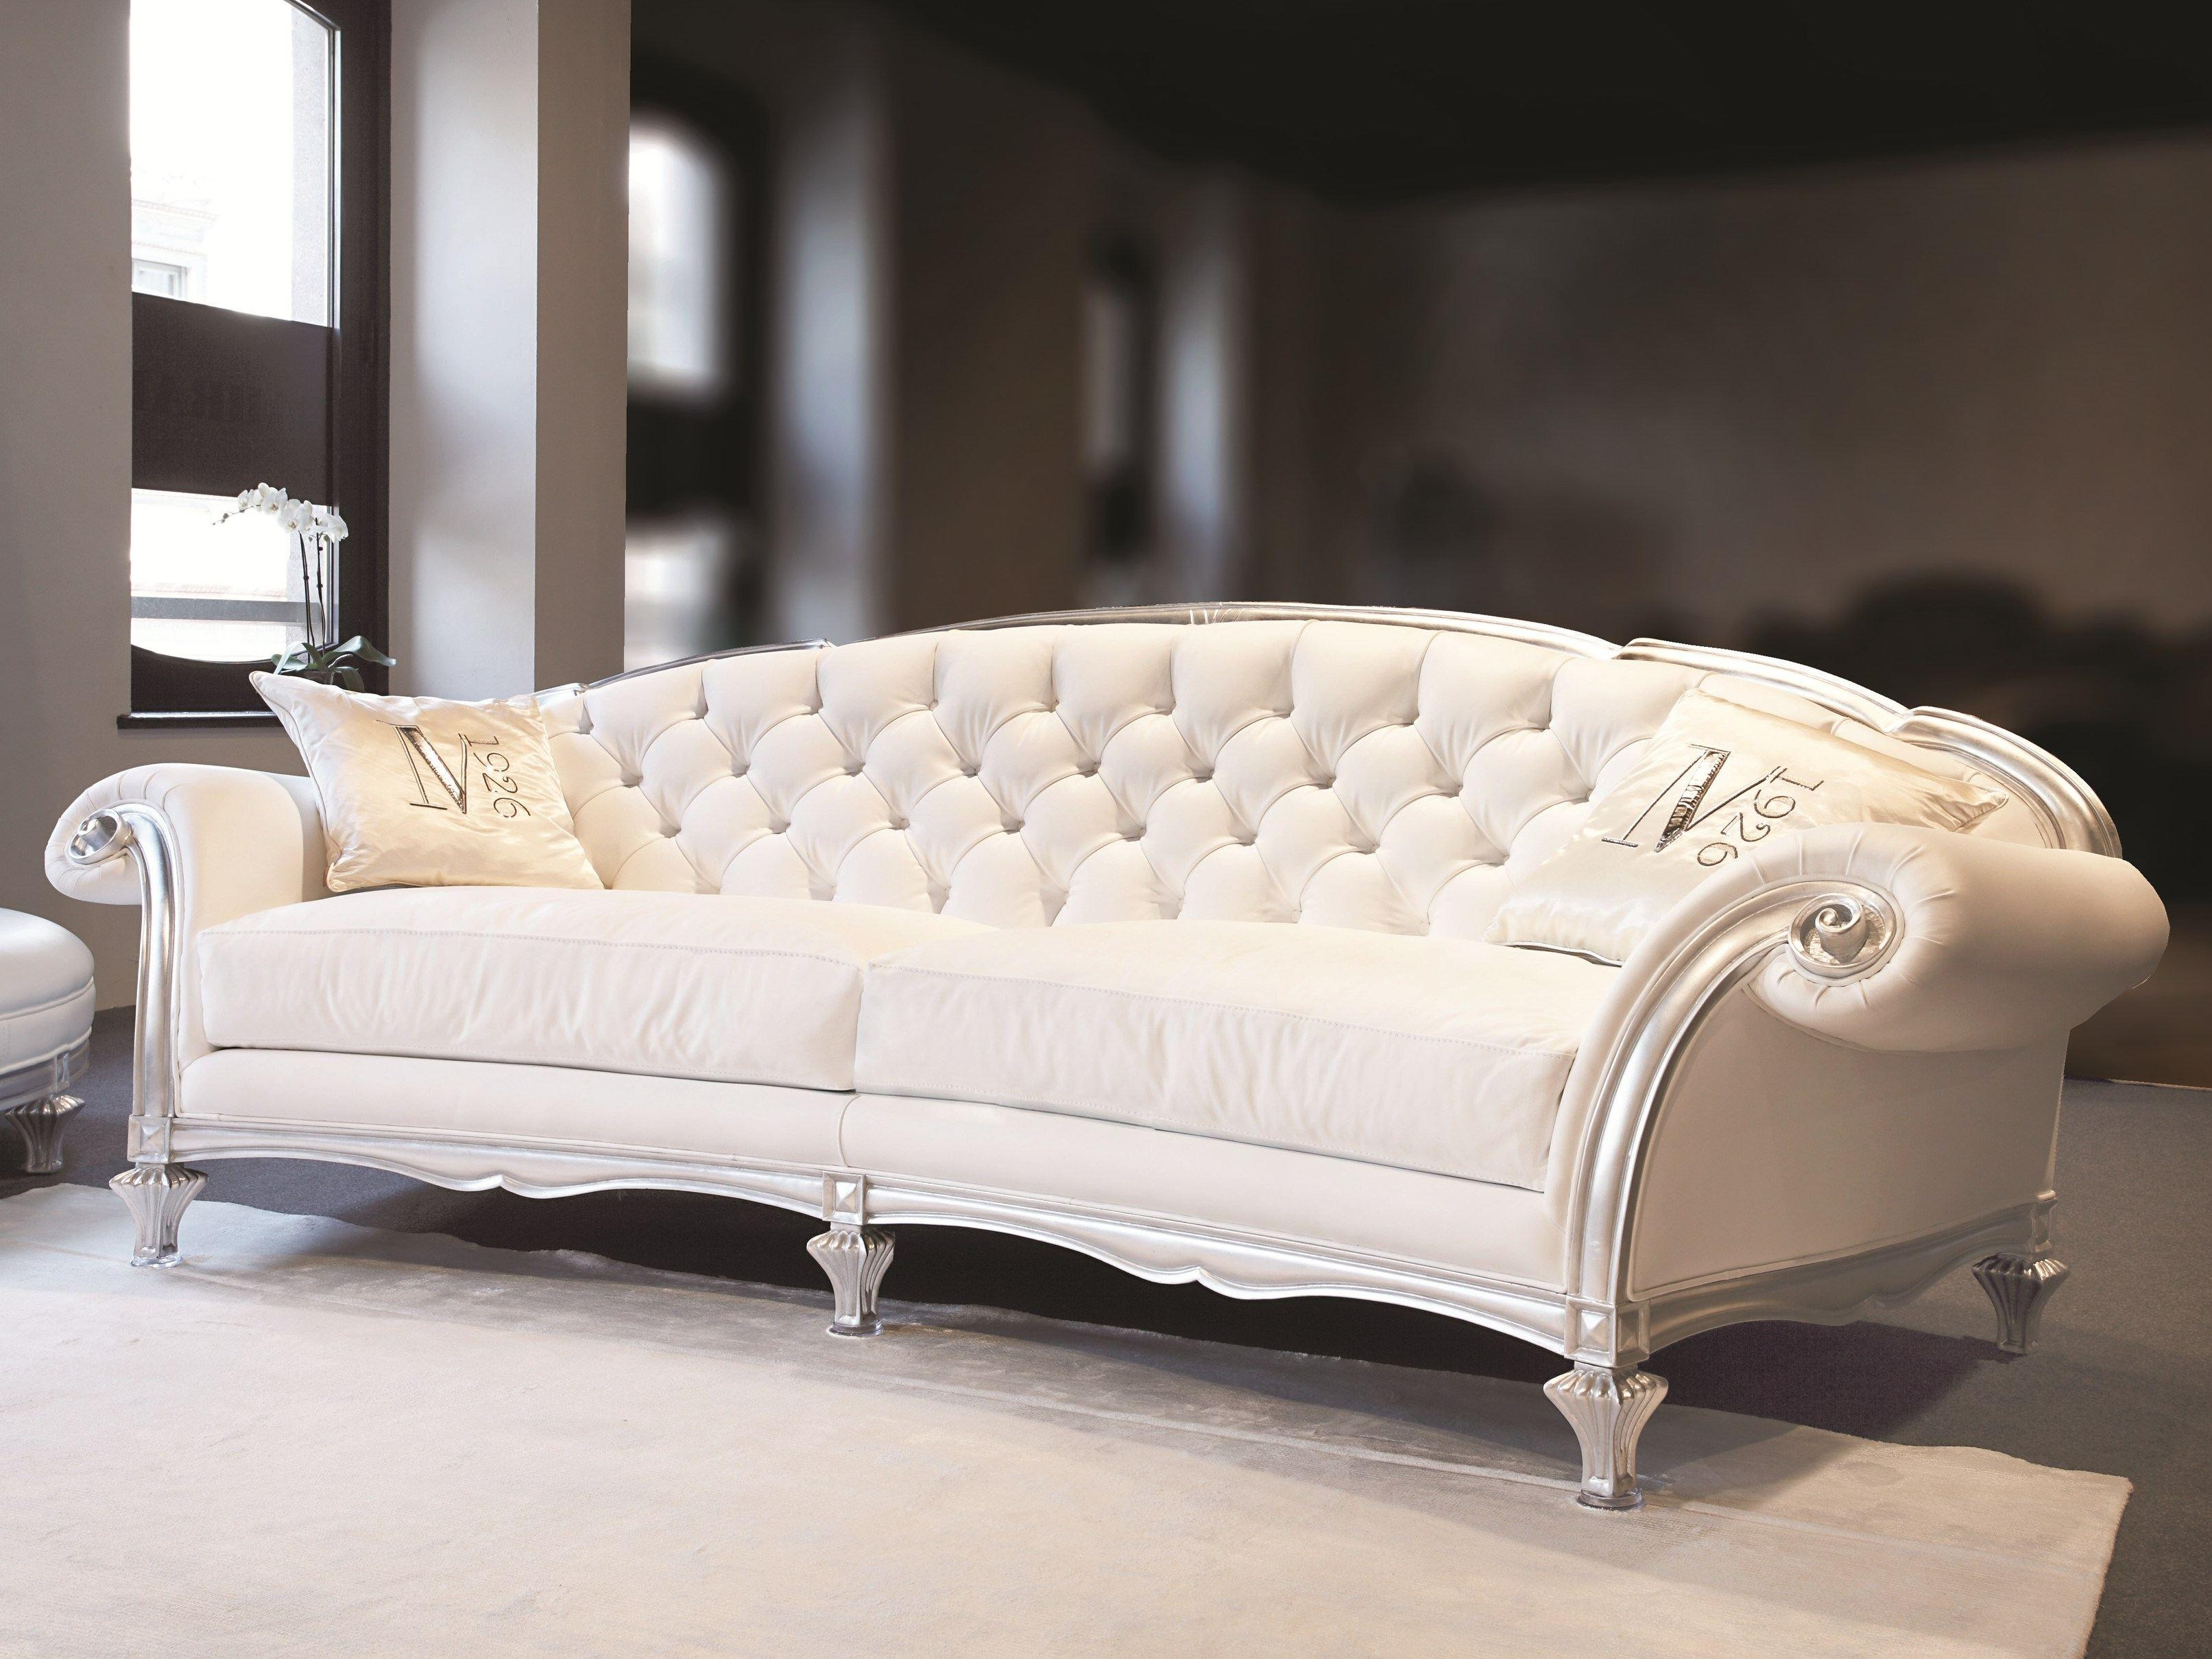 59196C33240Fa72Ac19756B964542A2E With Elegant Sofa Chair for Elegant Sofas And Chairs